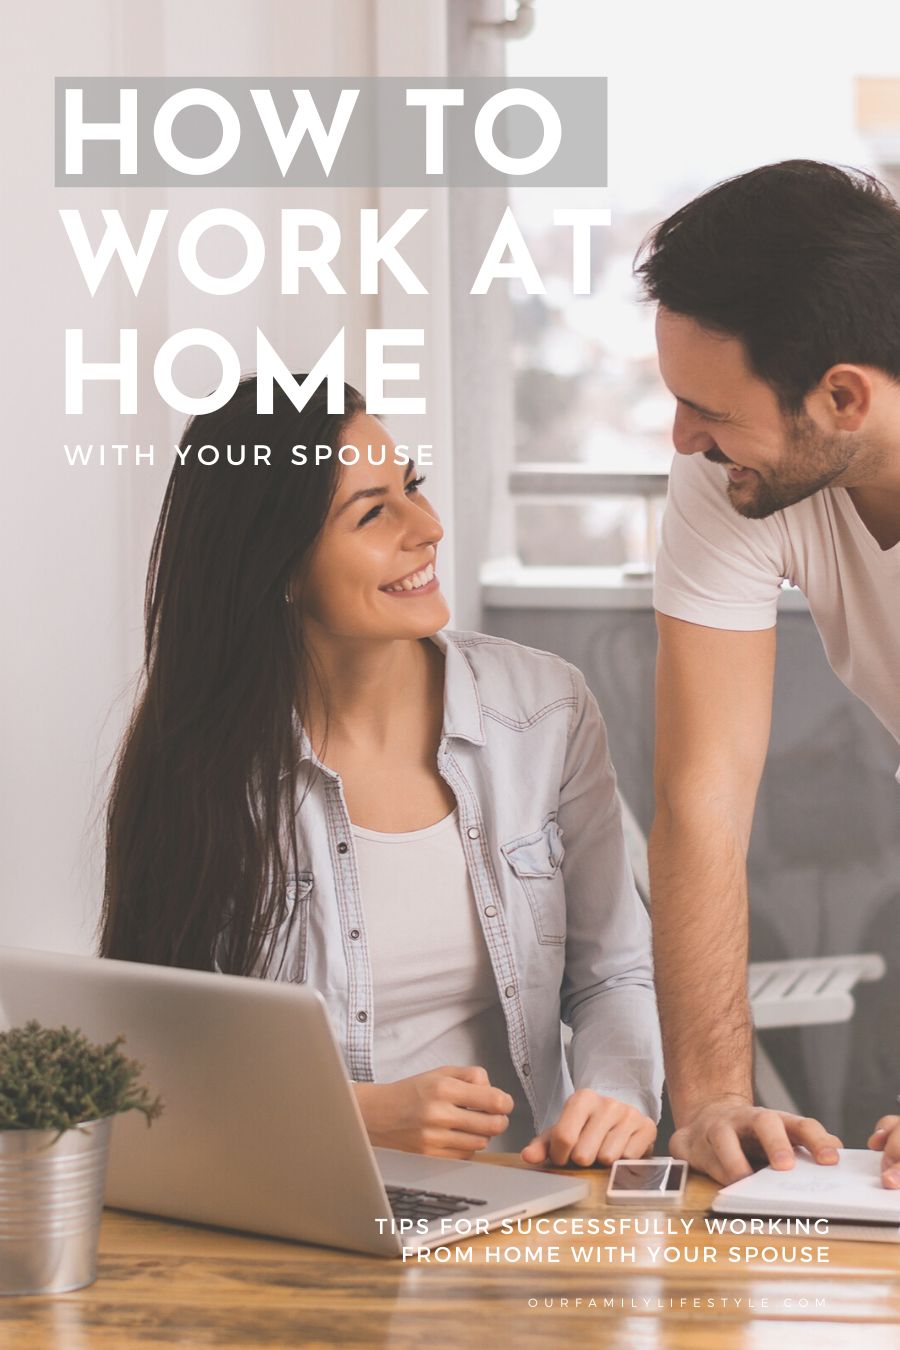 How to Work at Home With Your Spouse